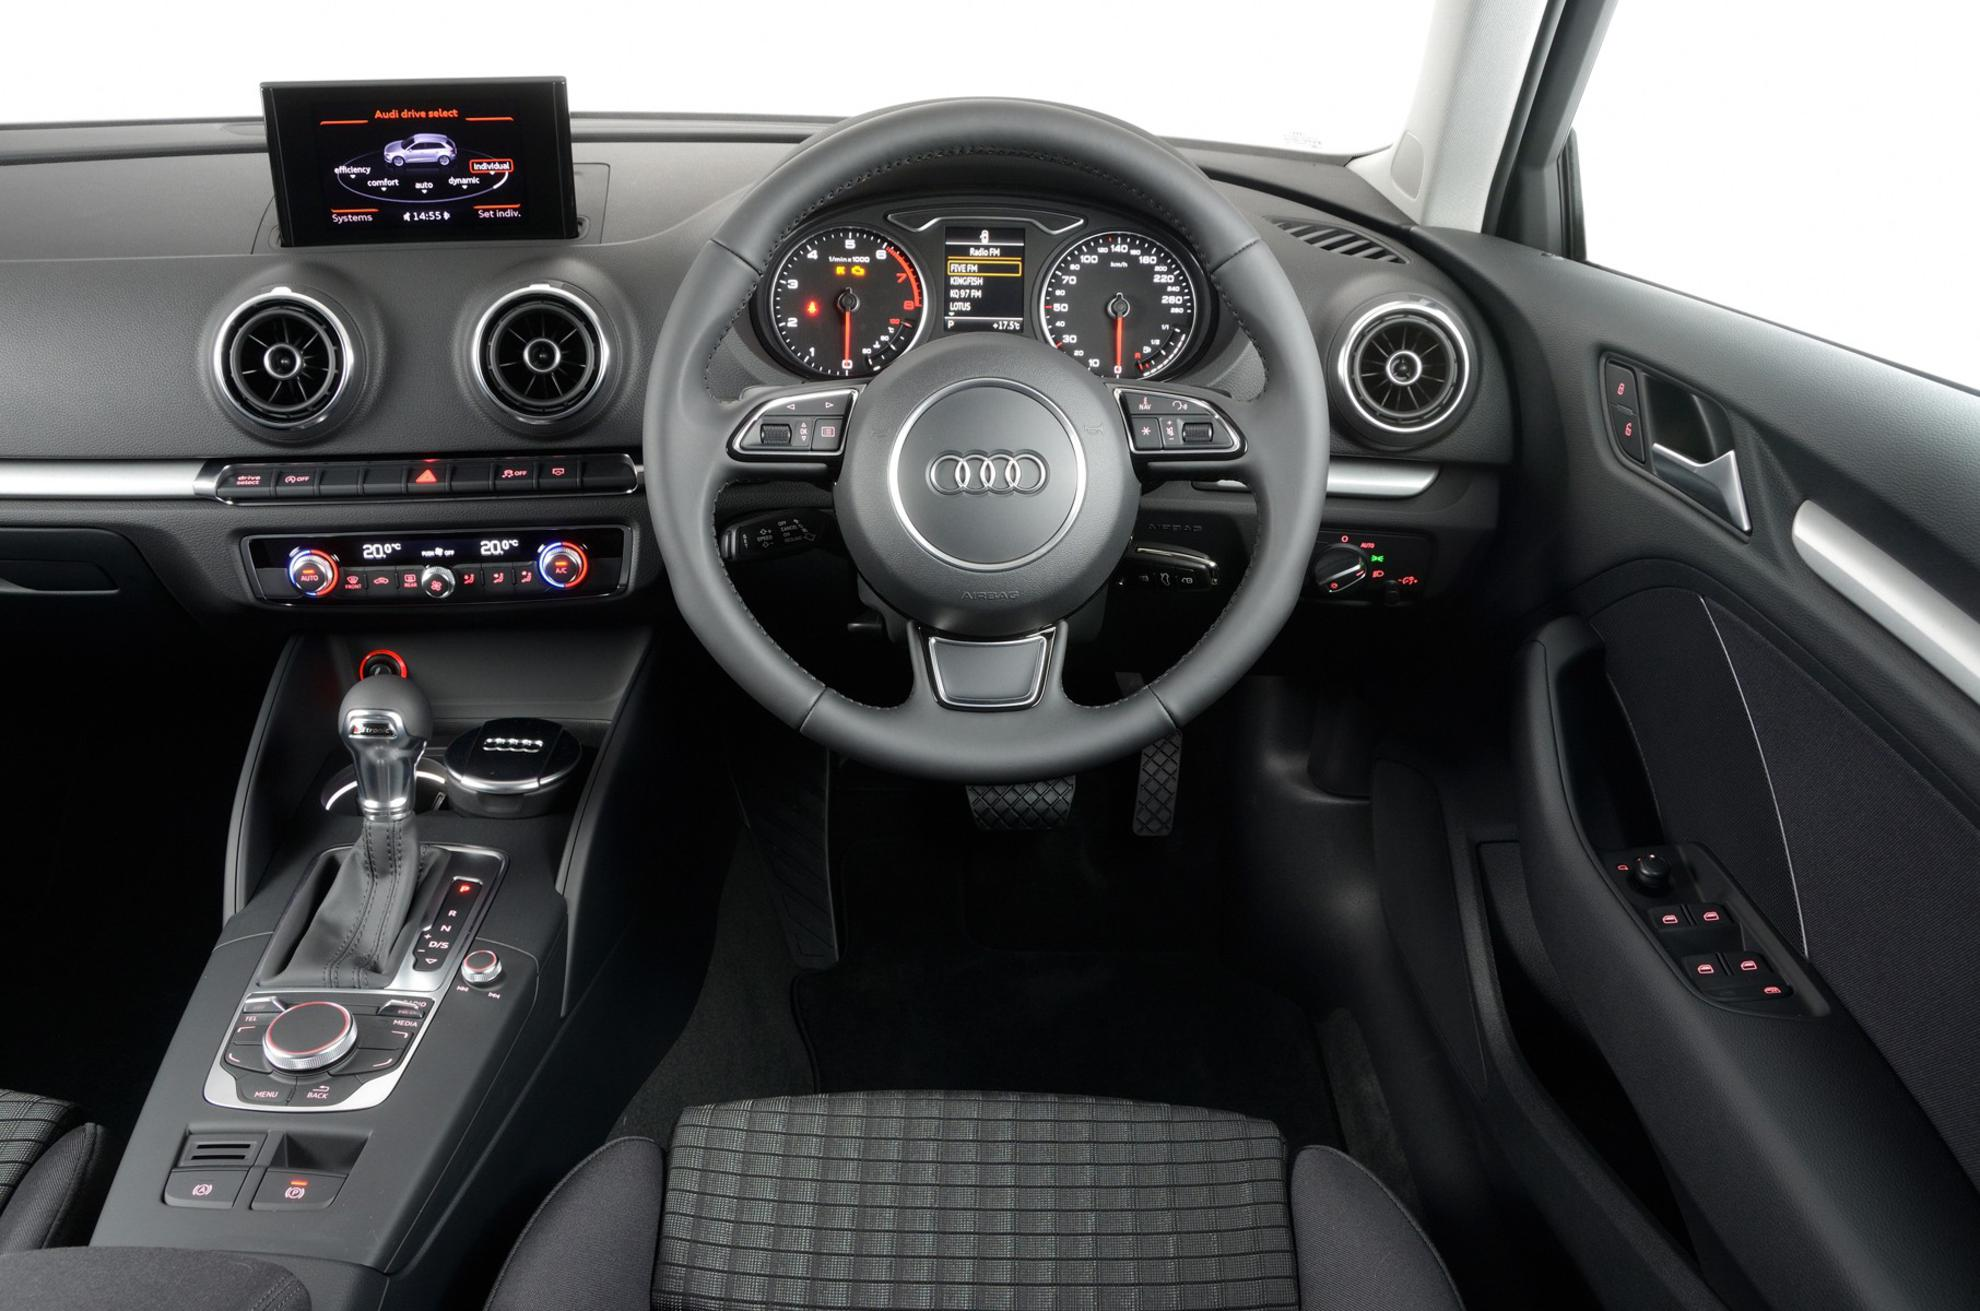 2013 a3 interior gallery for Audi a3 interieur